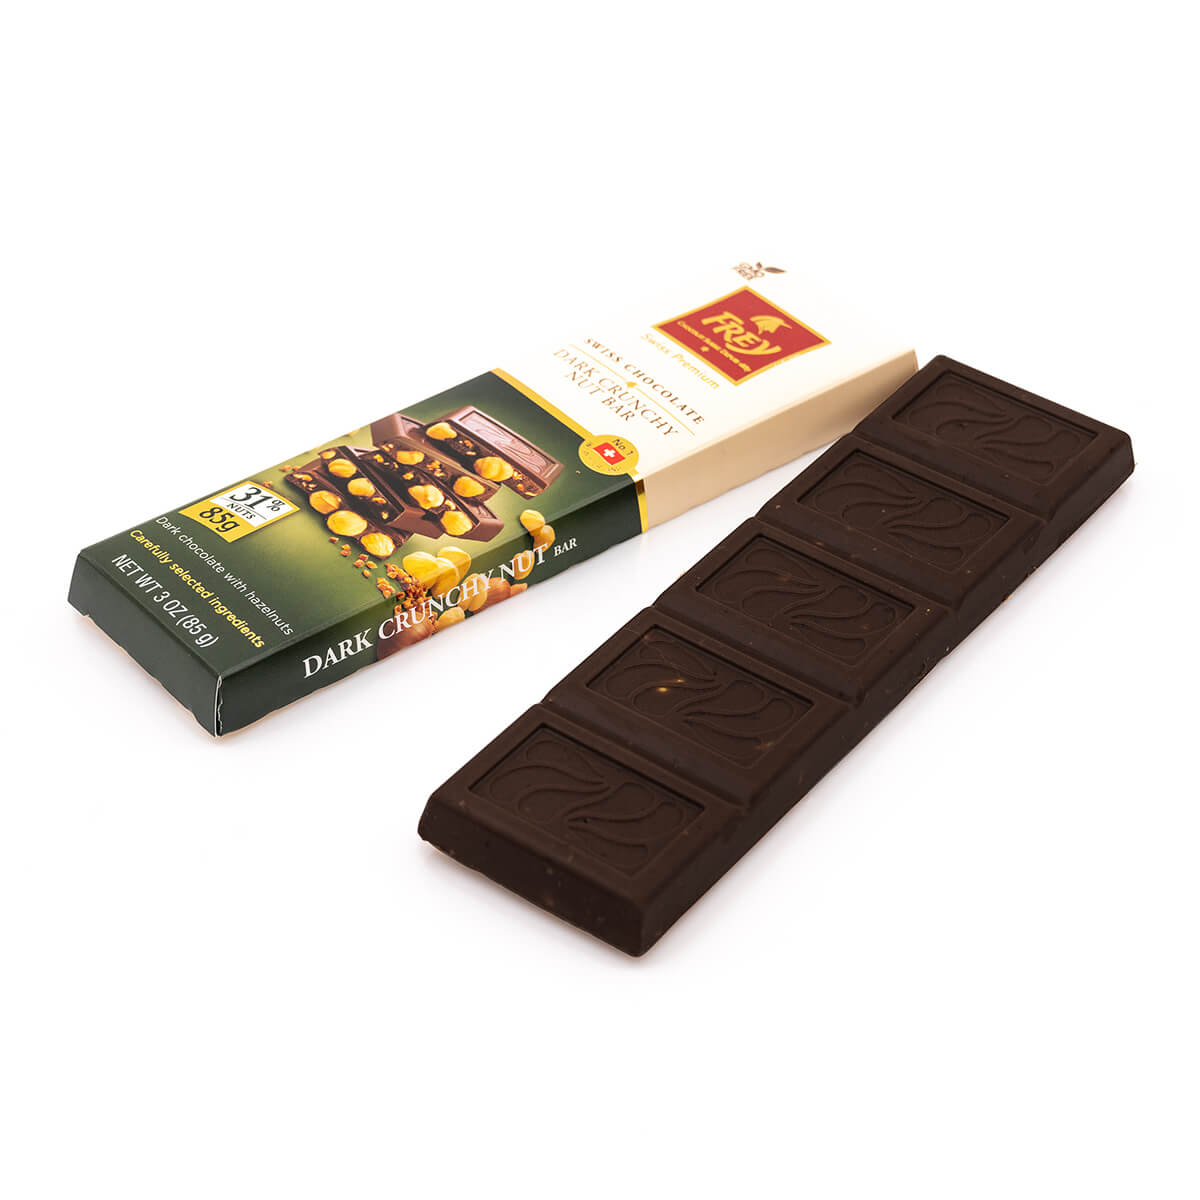 Dark Chocolate Crunchy Nut Bar - 3 oz